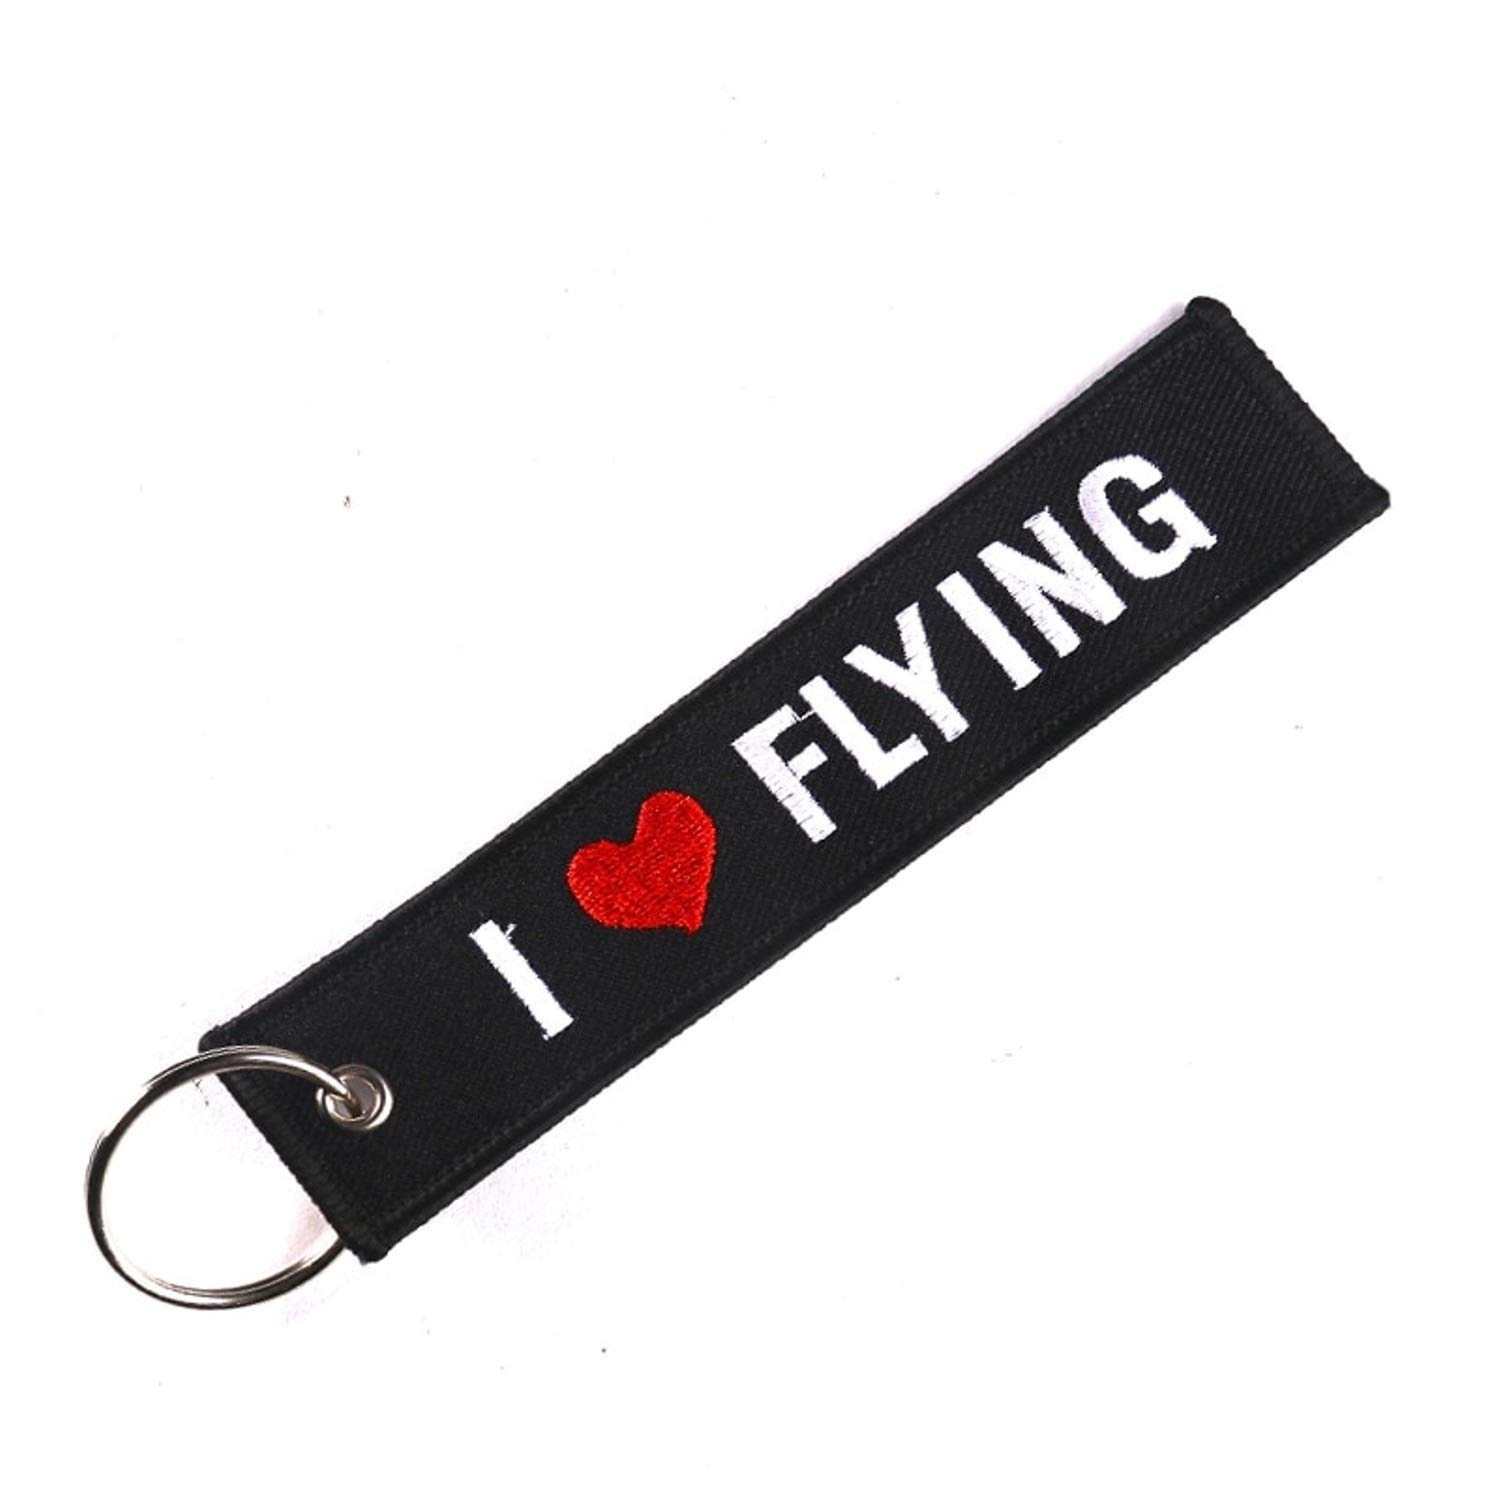 Amazon.com: Keychain - Gifts Flying Keyring Key Holder ...